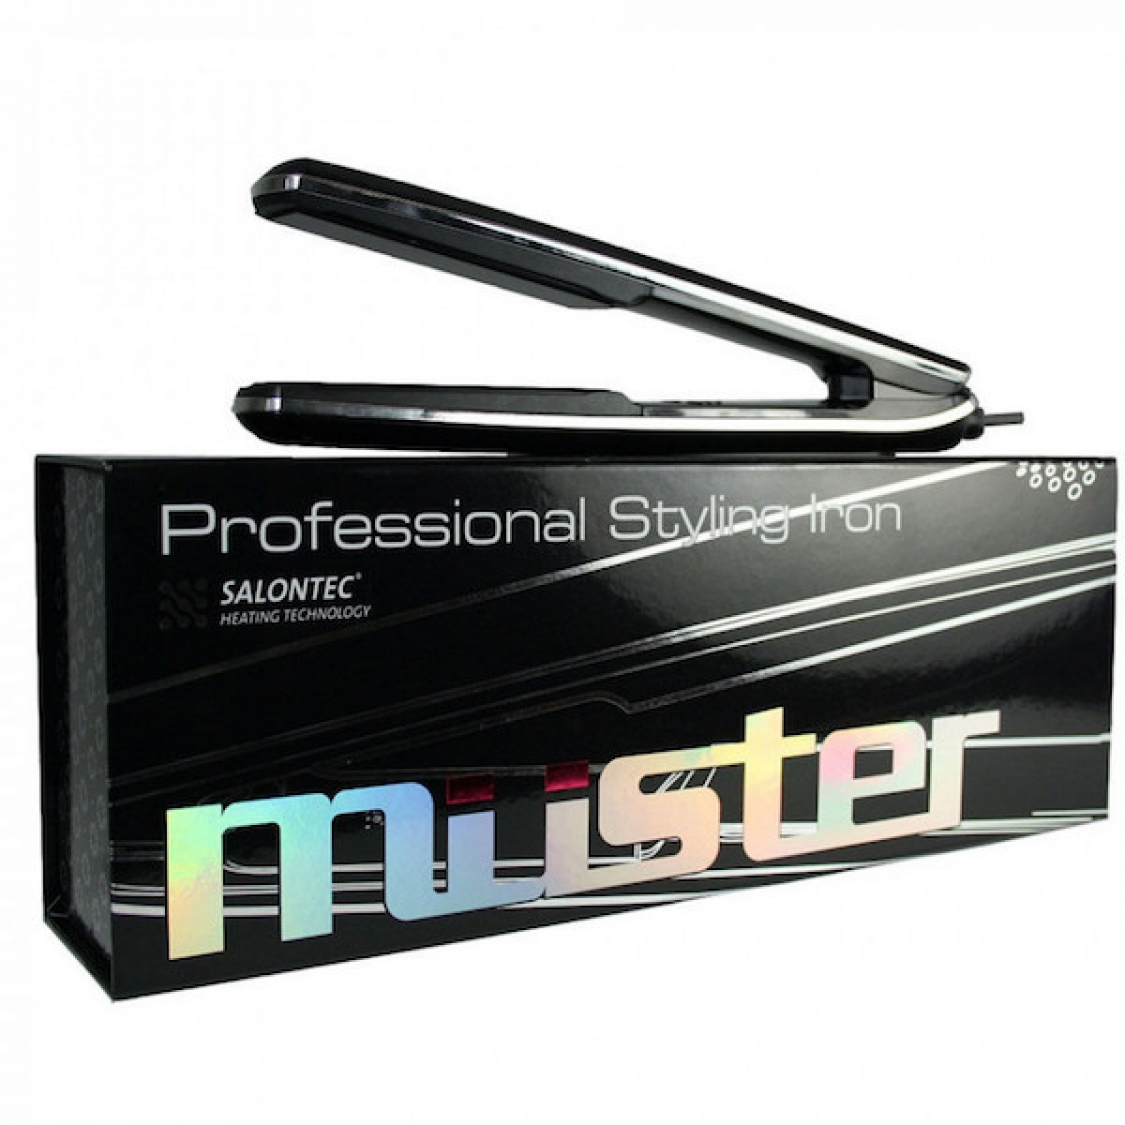 Muster Professional Styling Iron Now Available